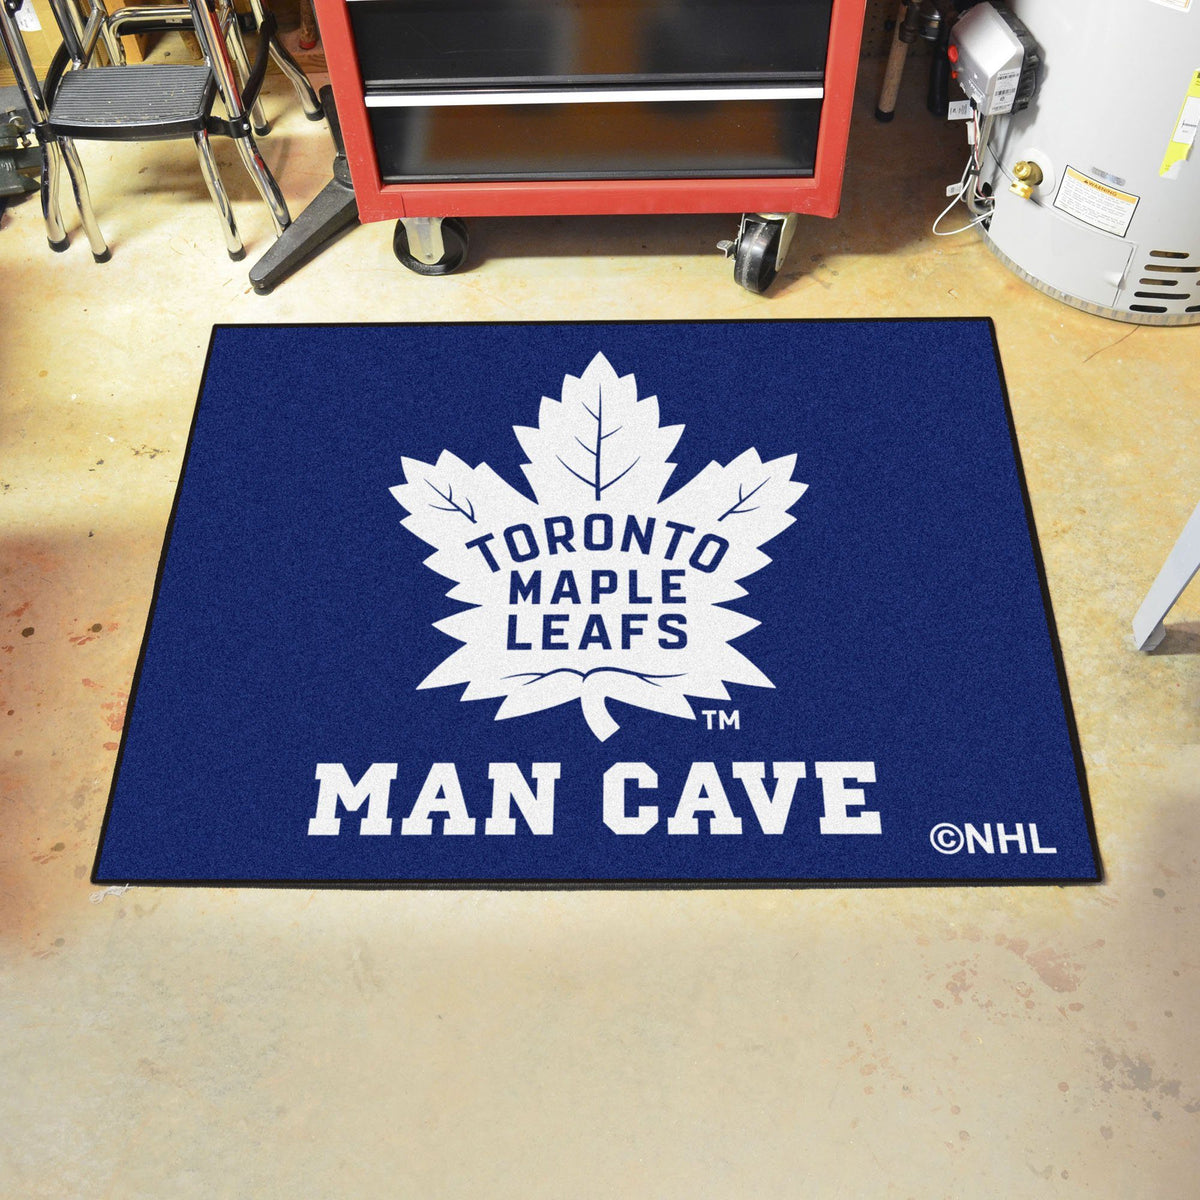 NHL - Man Cave All-Star NHL Mats, Rectangular Mats, Man Cave All-Star Mat, NHL, Home Fan Mats Toronto Maple Leafs